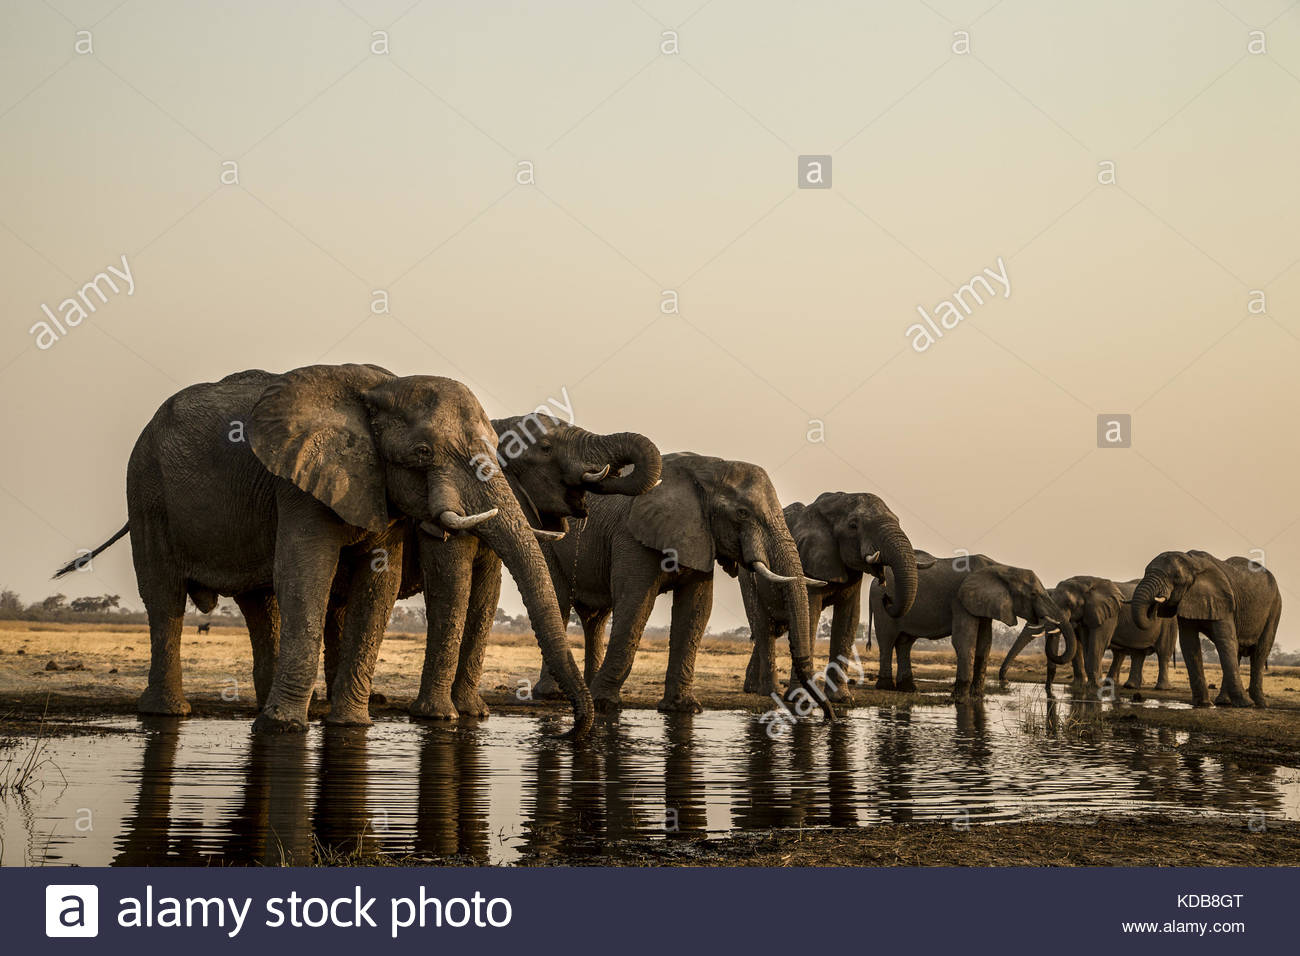 A herd of elephants, Loxodonta africana, drink from a spillway. - Stock Image